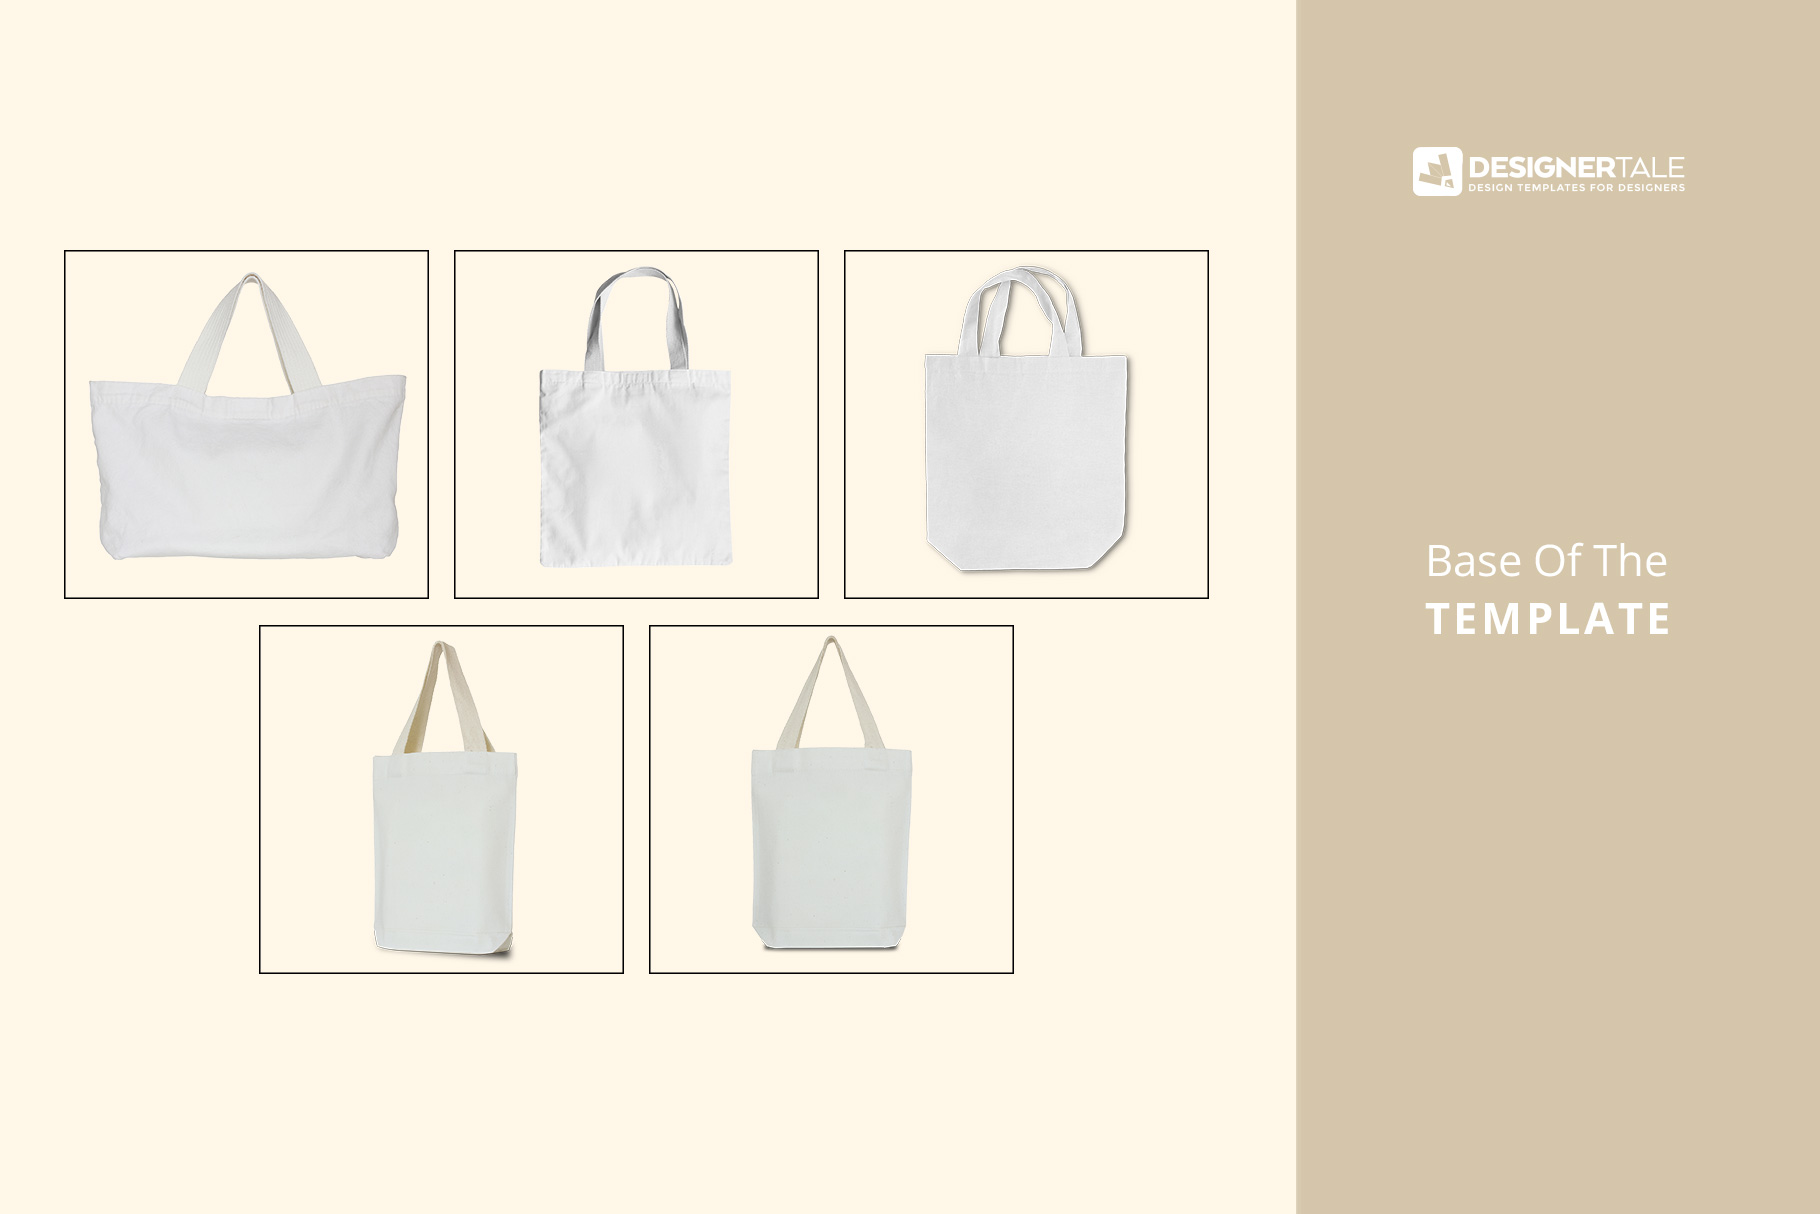 raw images used to create the tote bag mockup set